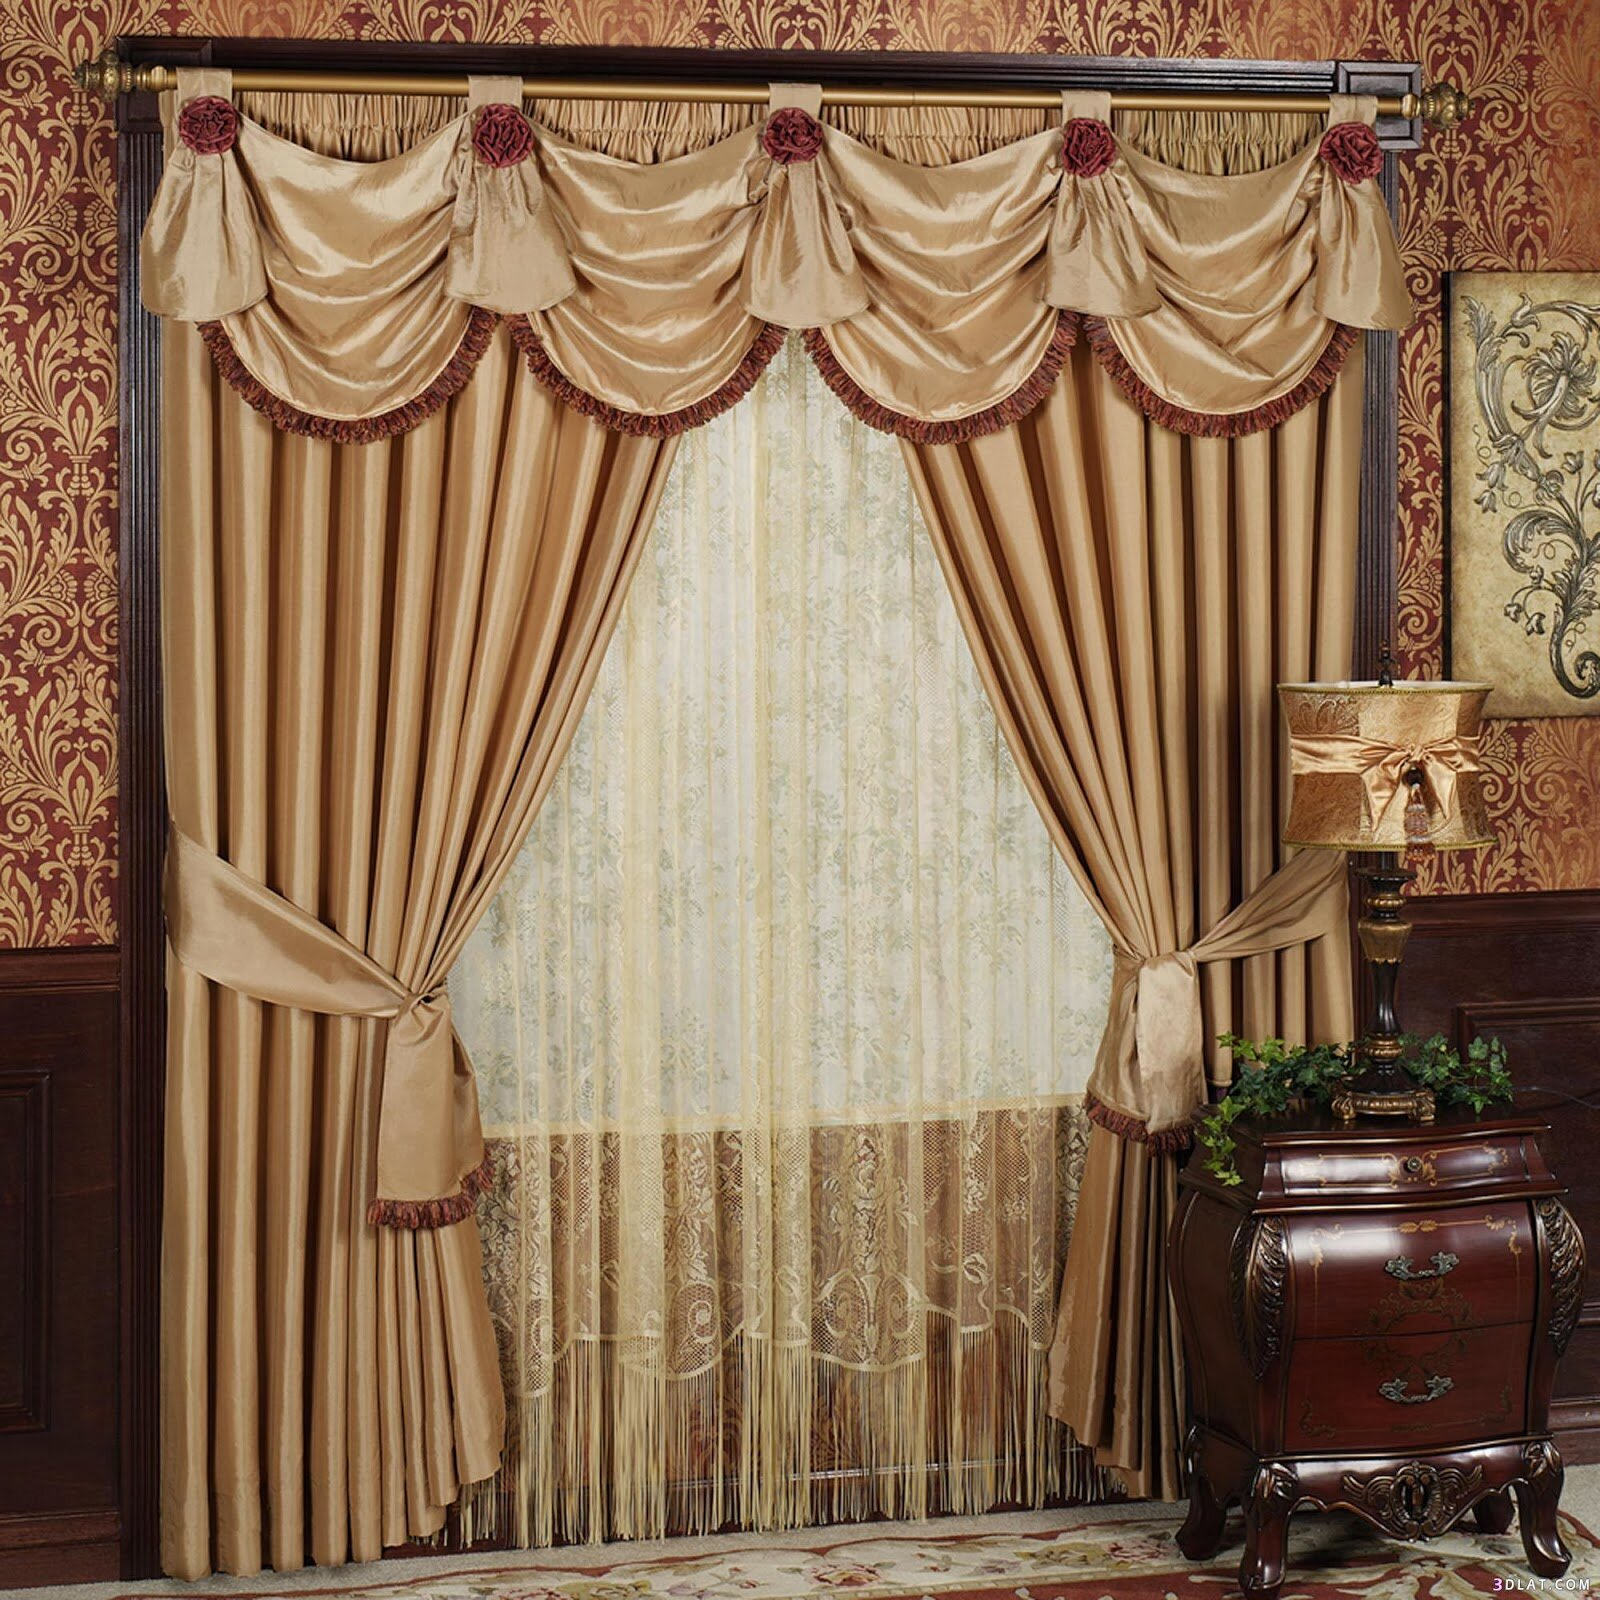 Windows Valances | Valances for Bedroom | Living Room Valances